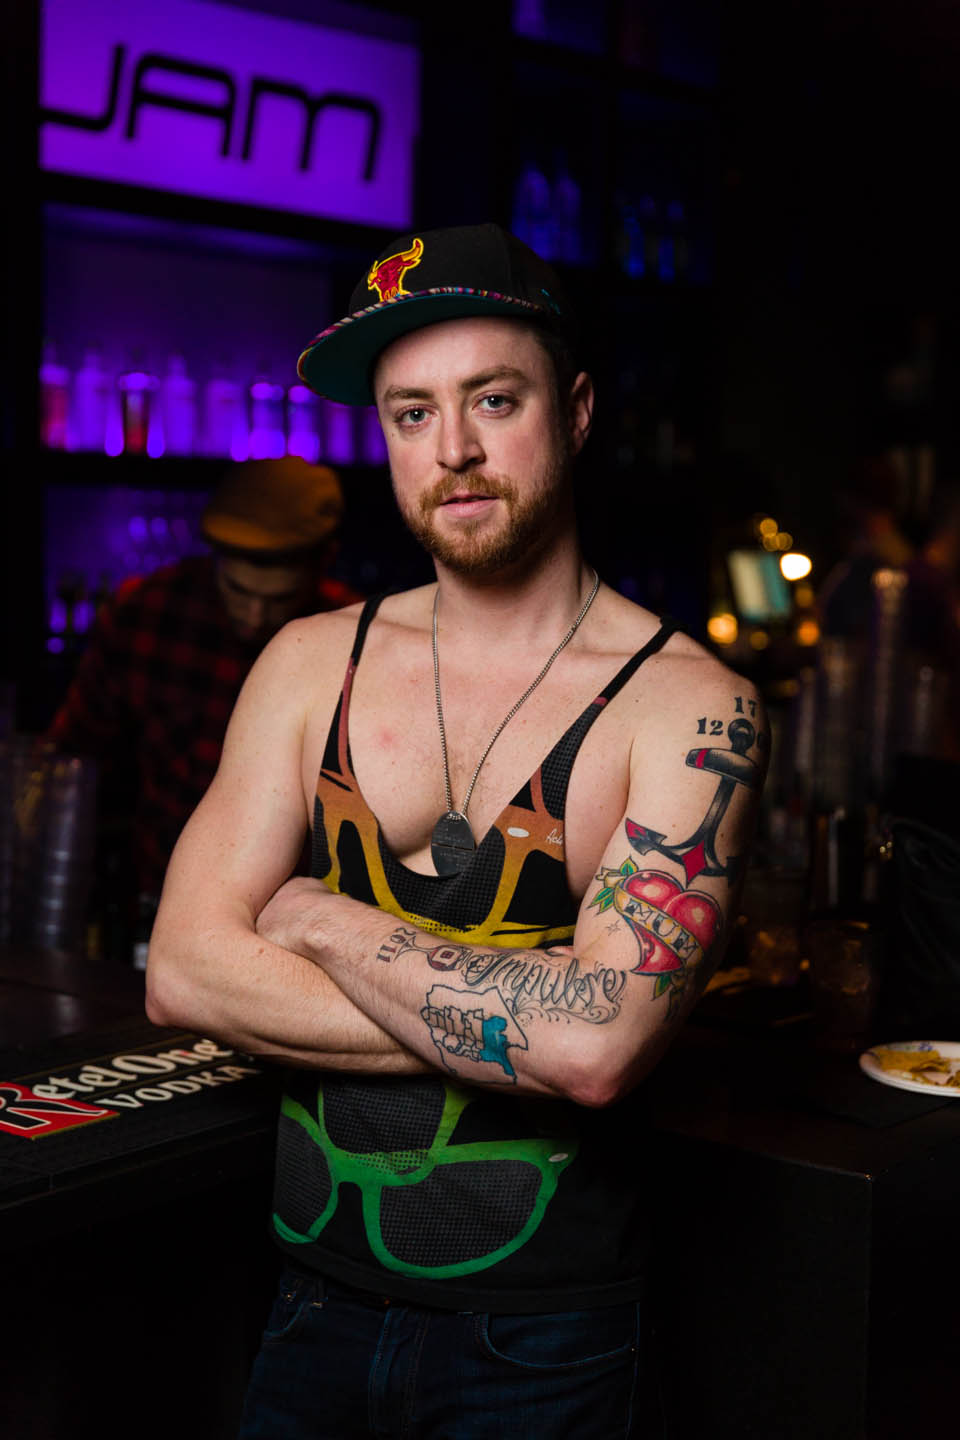 Gotta have tattoos if you're a bartender